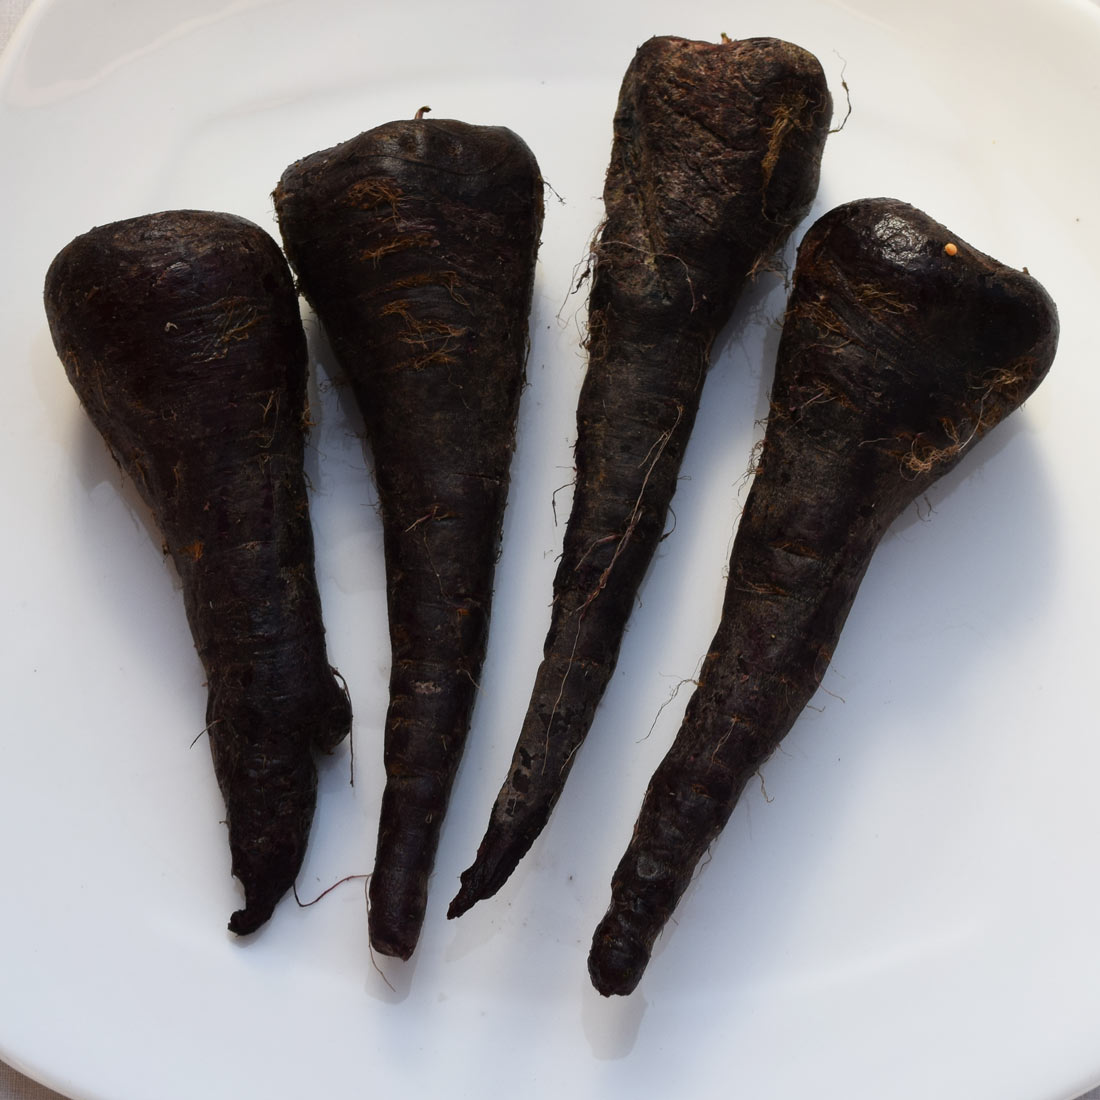 Kali Gajar or Black Carrot